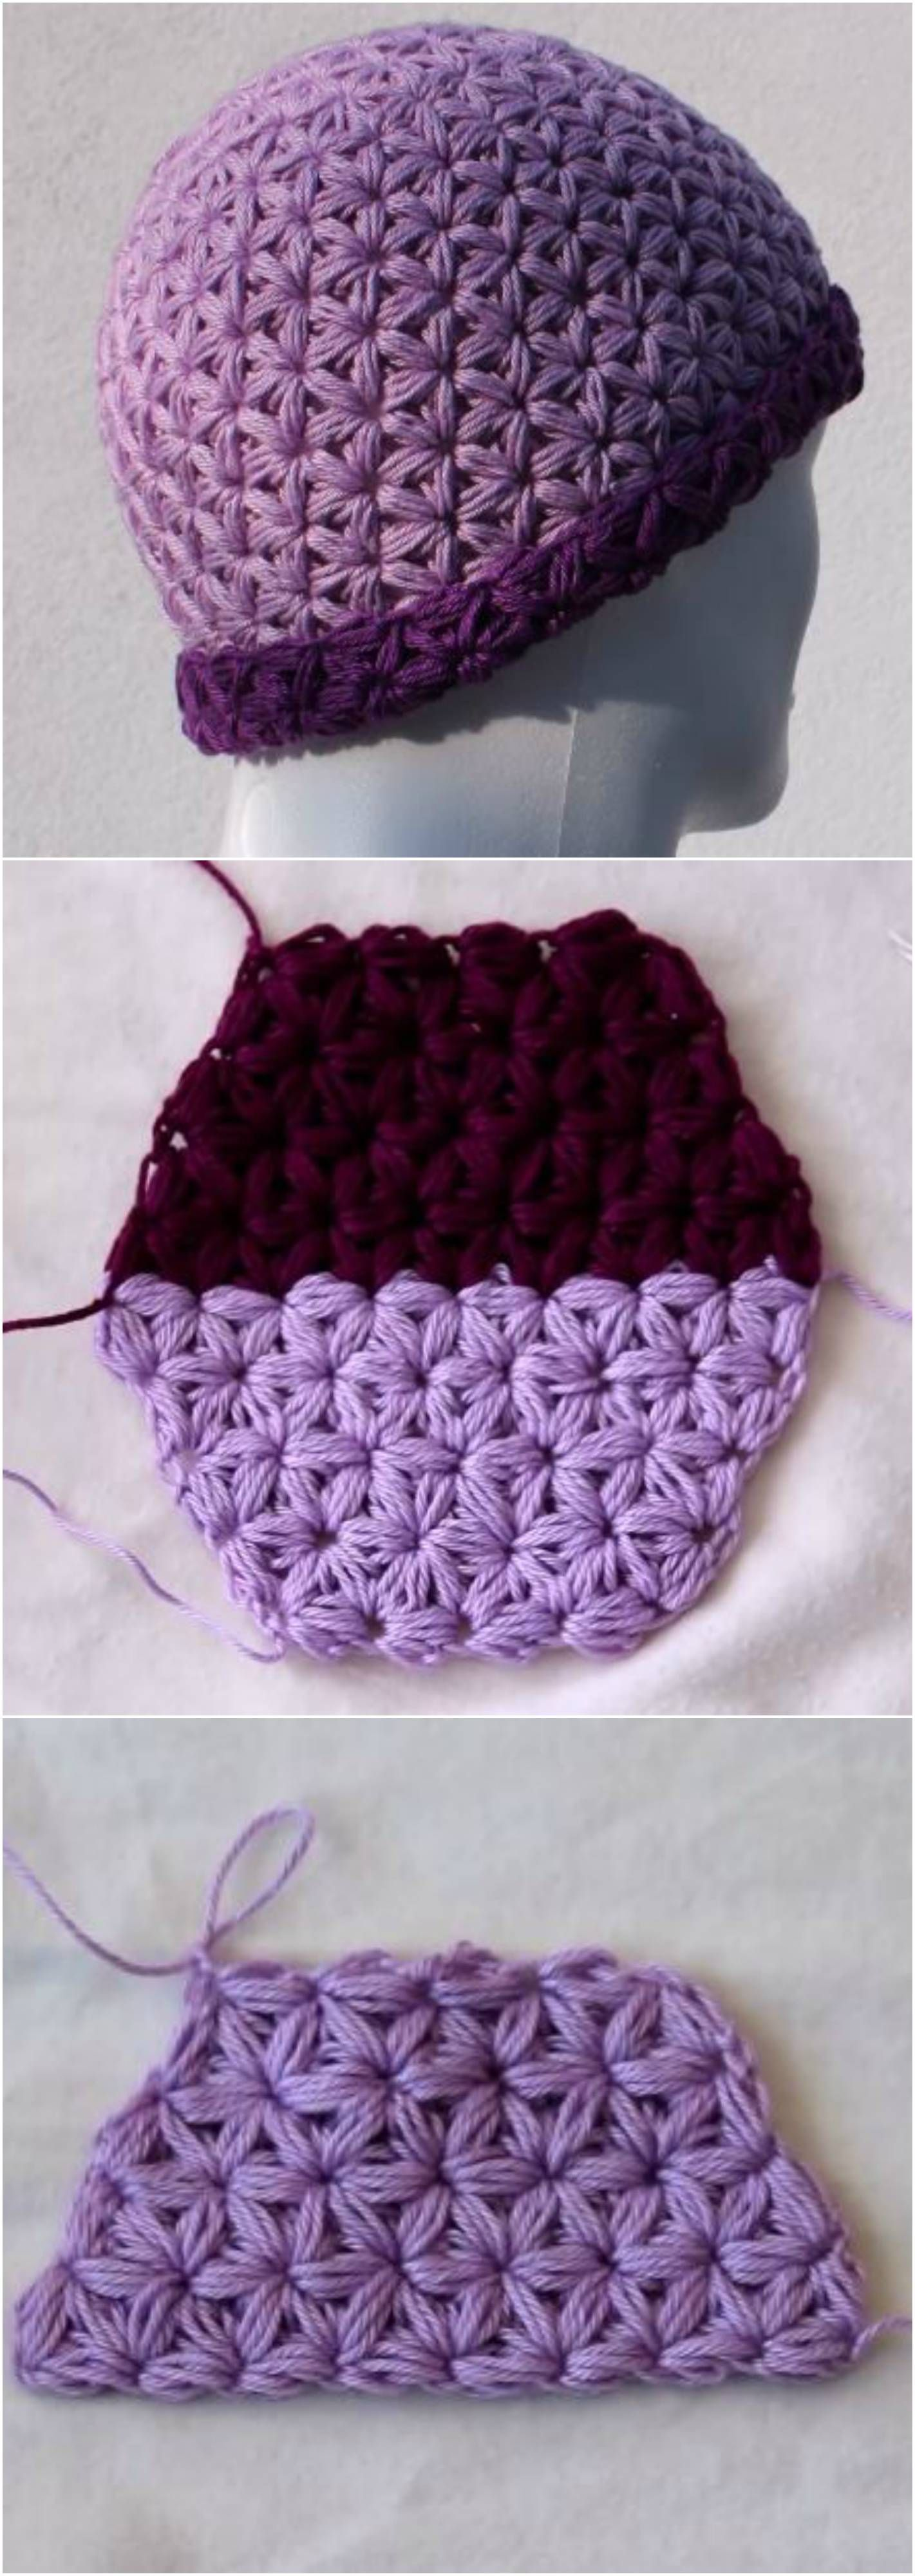 Crochet Triangle Star Stitch Hat | Gorros y Capilla